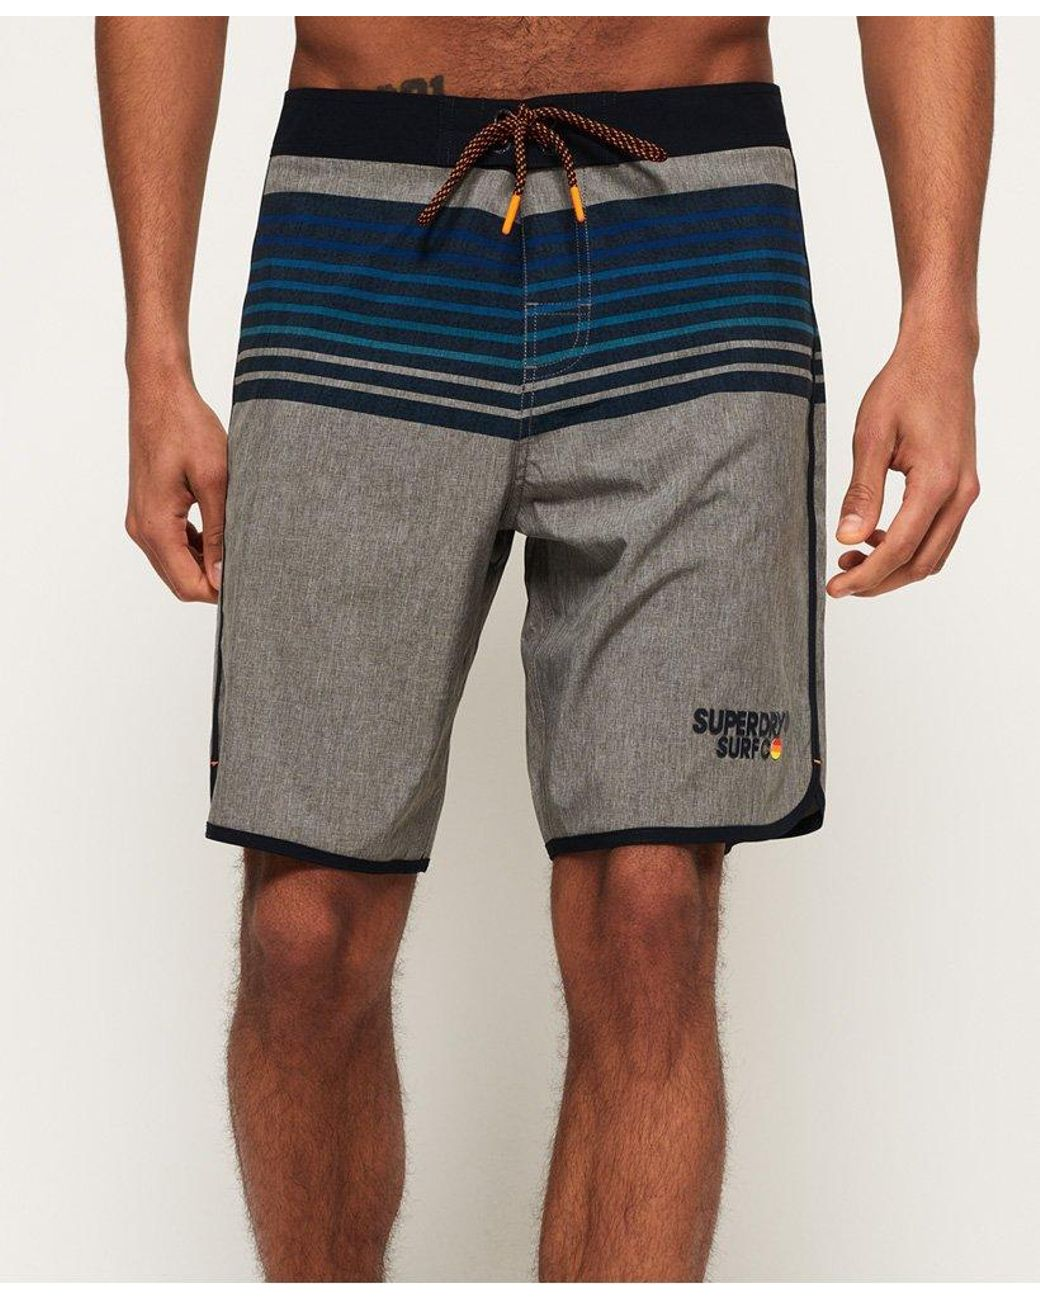 27660e30b9 Superdry Upstate Retro Boardshorts in Gray for Men - Save 49% - Lyst